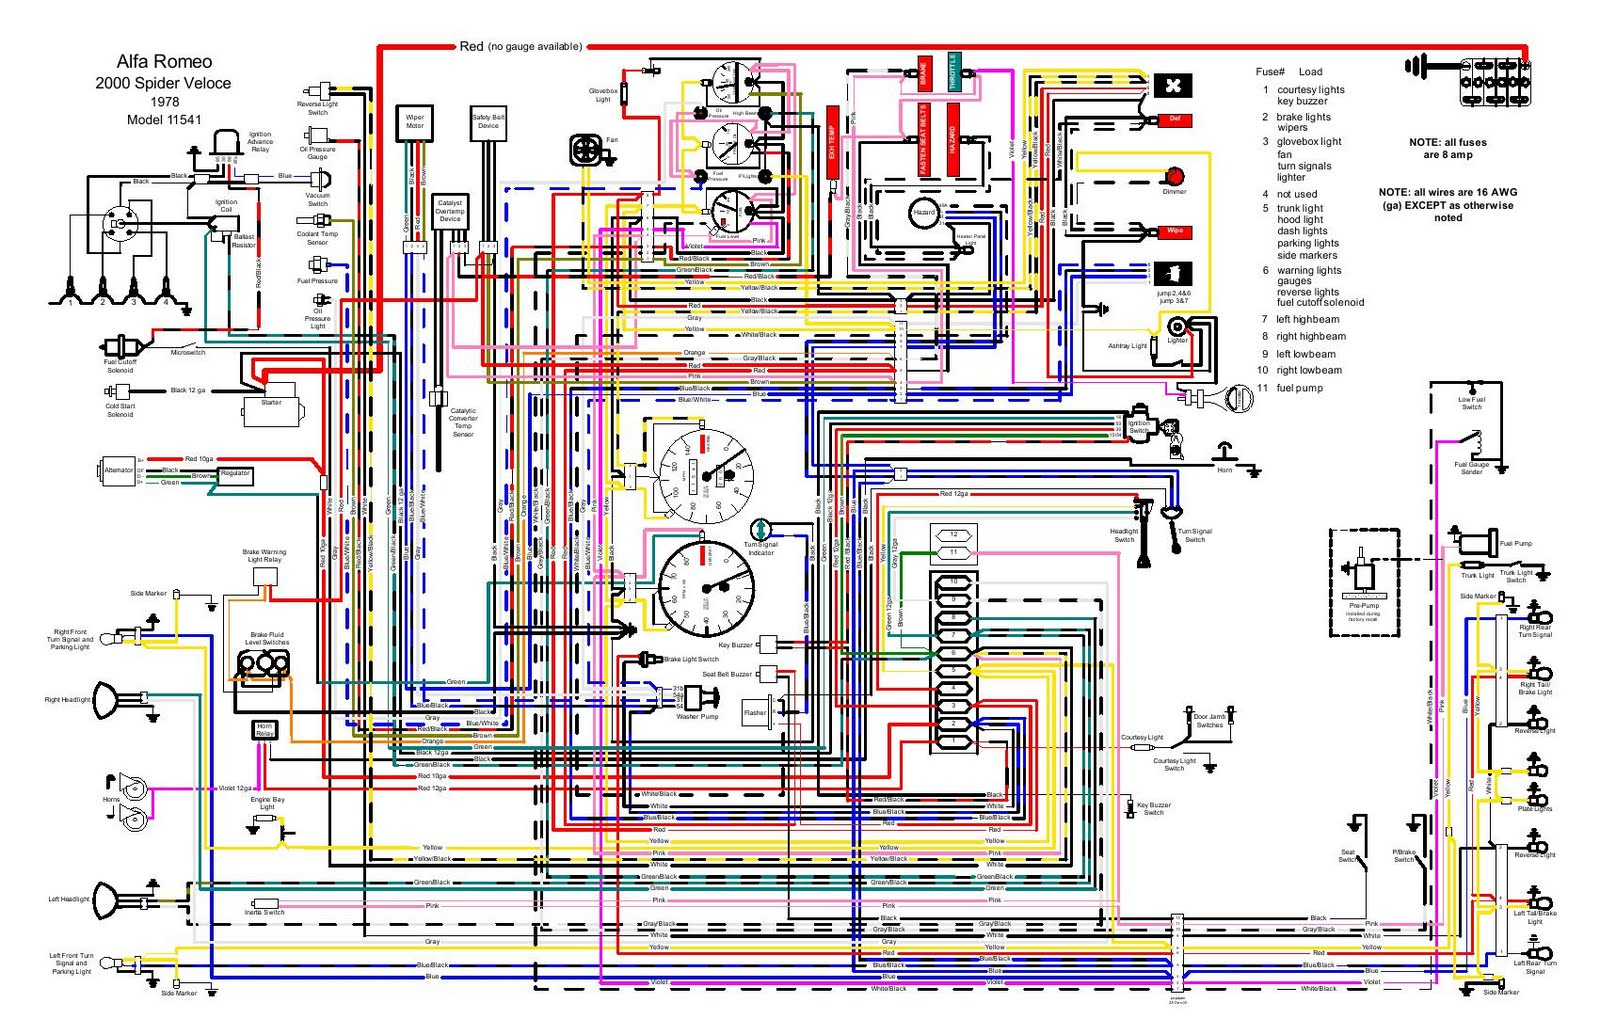 1978_Alfa_Romeo_2000_Spider_Wiring alfa romeo spider wiring diagram volvo amazon wiring diagram volvo amazon wiring diagram at edmiracle.co